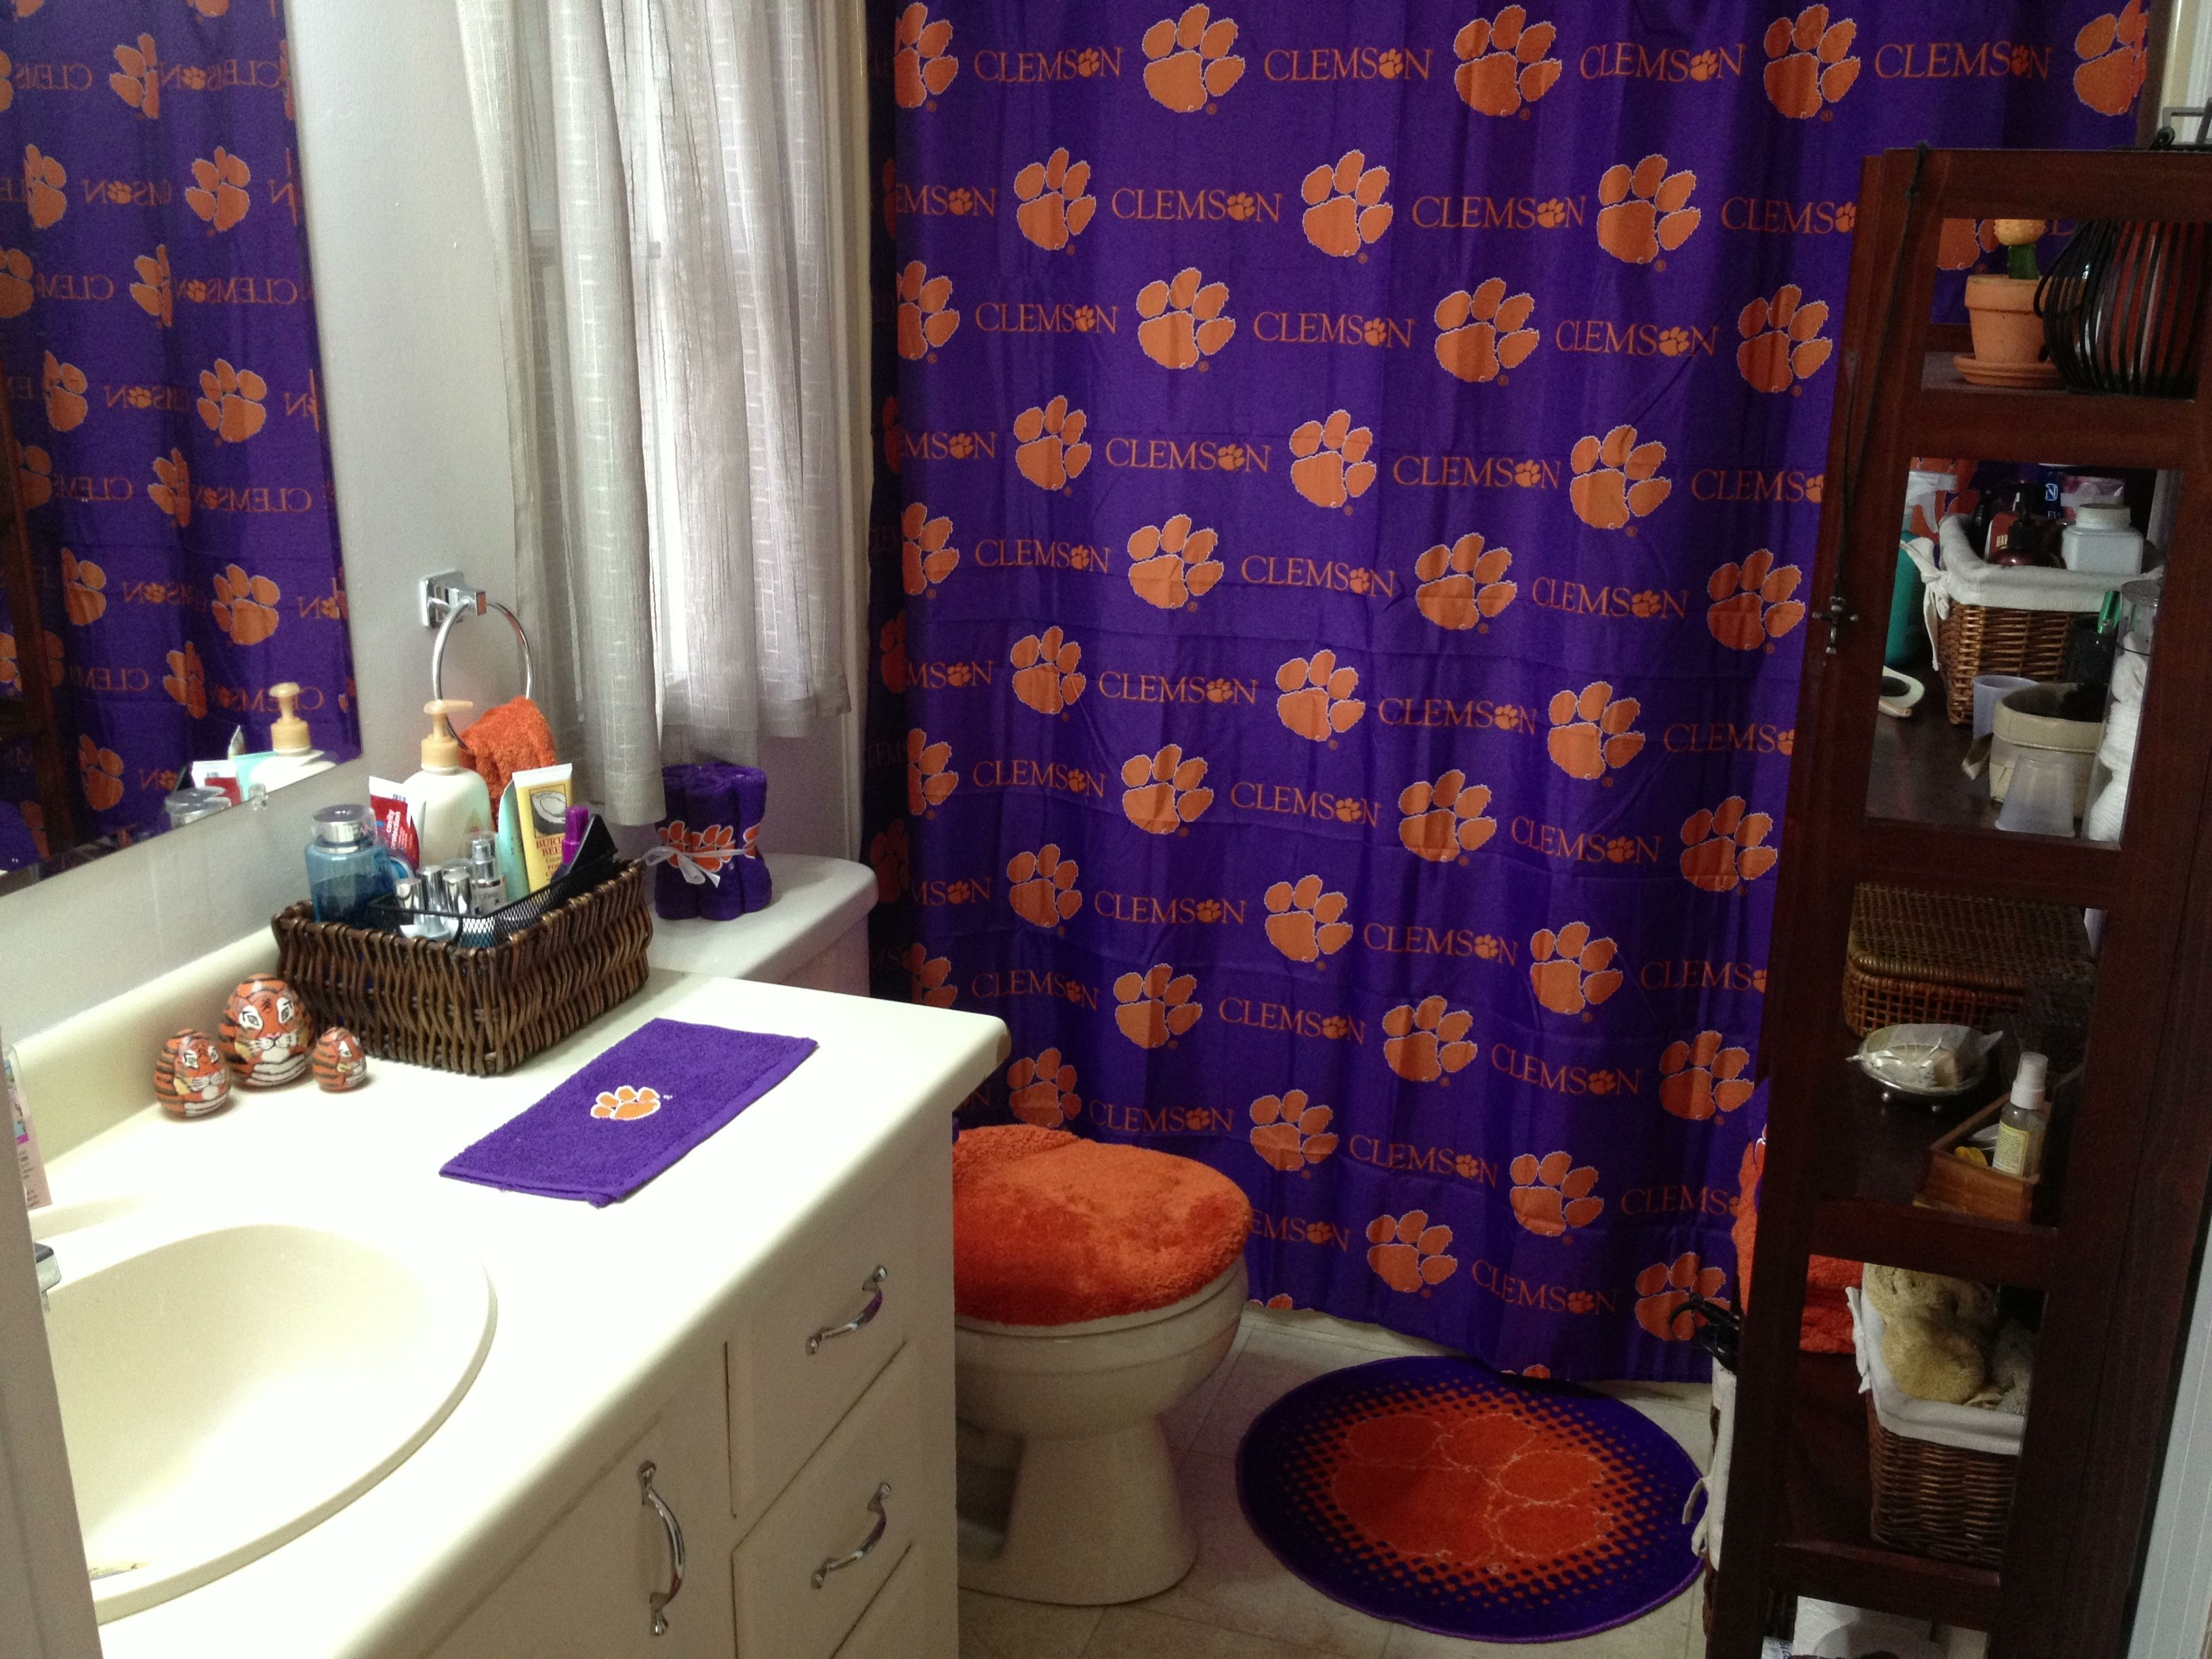 Elegant Clemson Shower Curtain